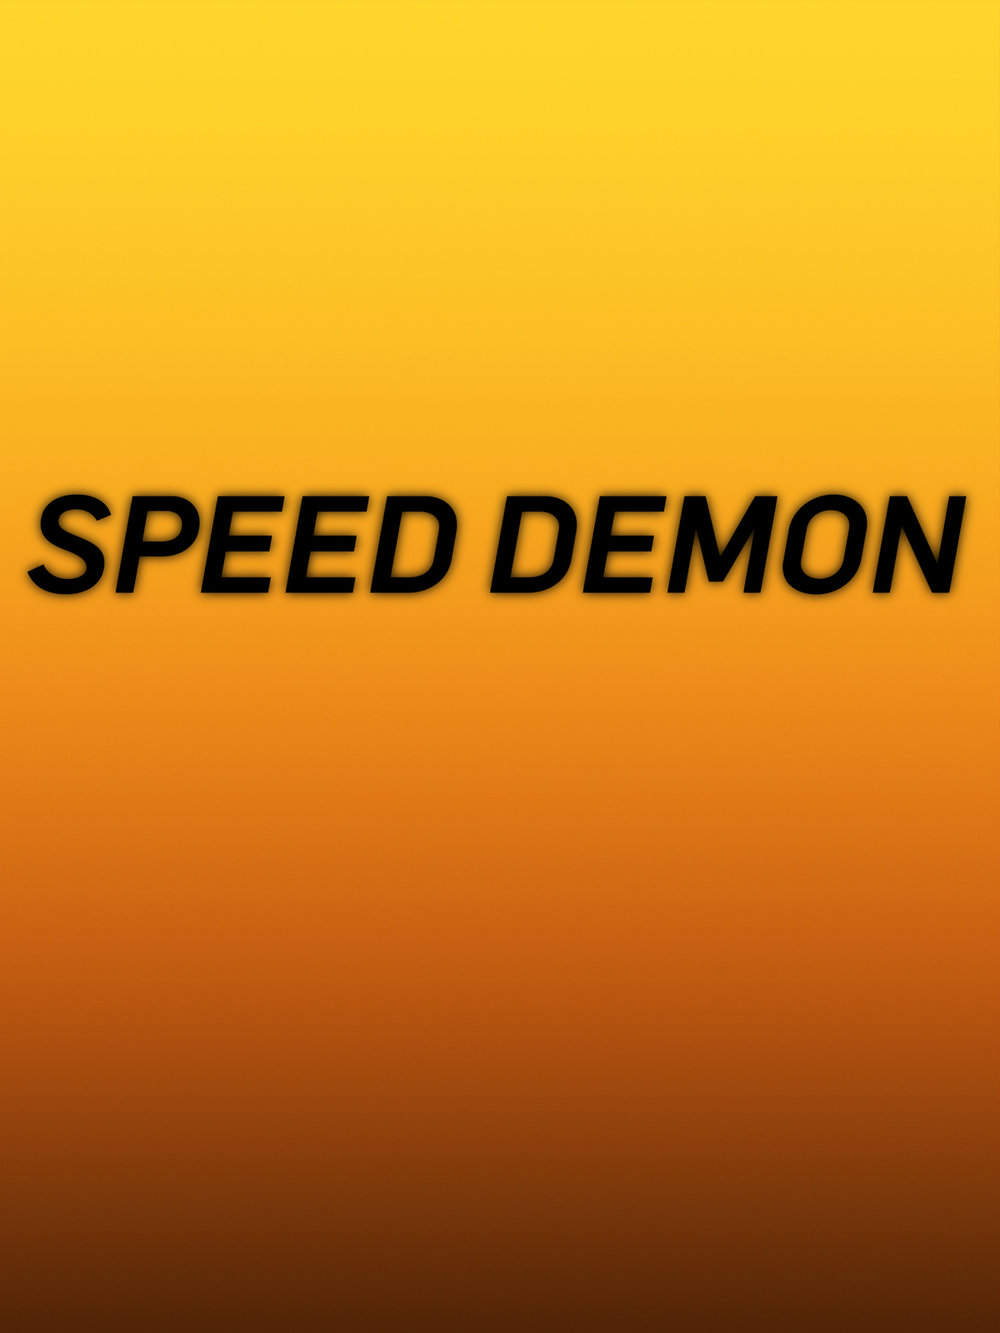 Here-SpeedDemon-Full-Image-en-US.jpg